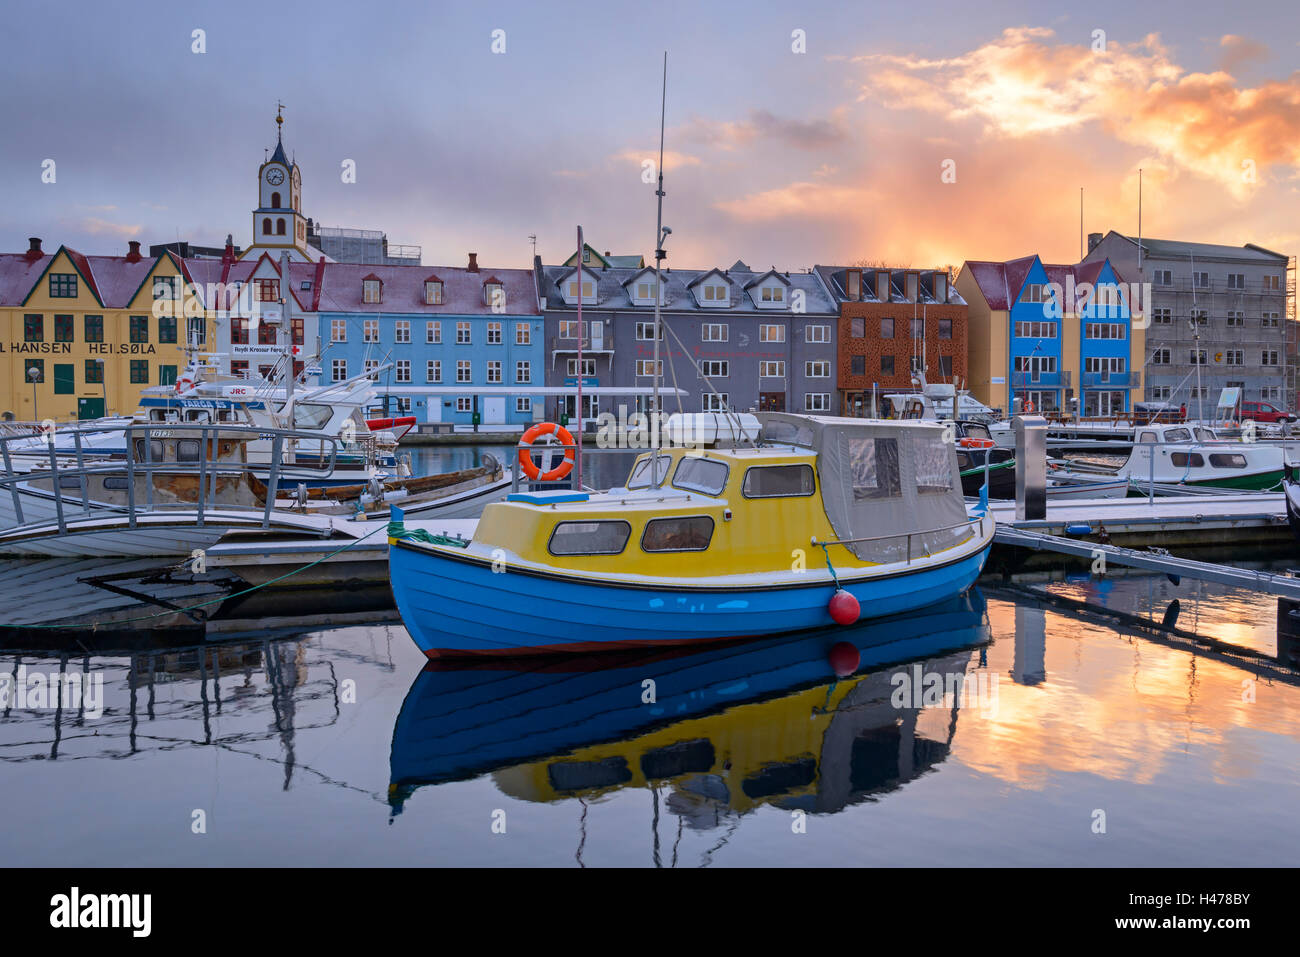 Boats in Torshavn harbour at sunrise, Faroe Islands, Denmark, Europe. Winter (April) 2015. - Stock Image